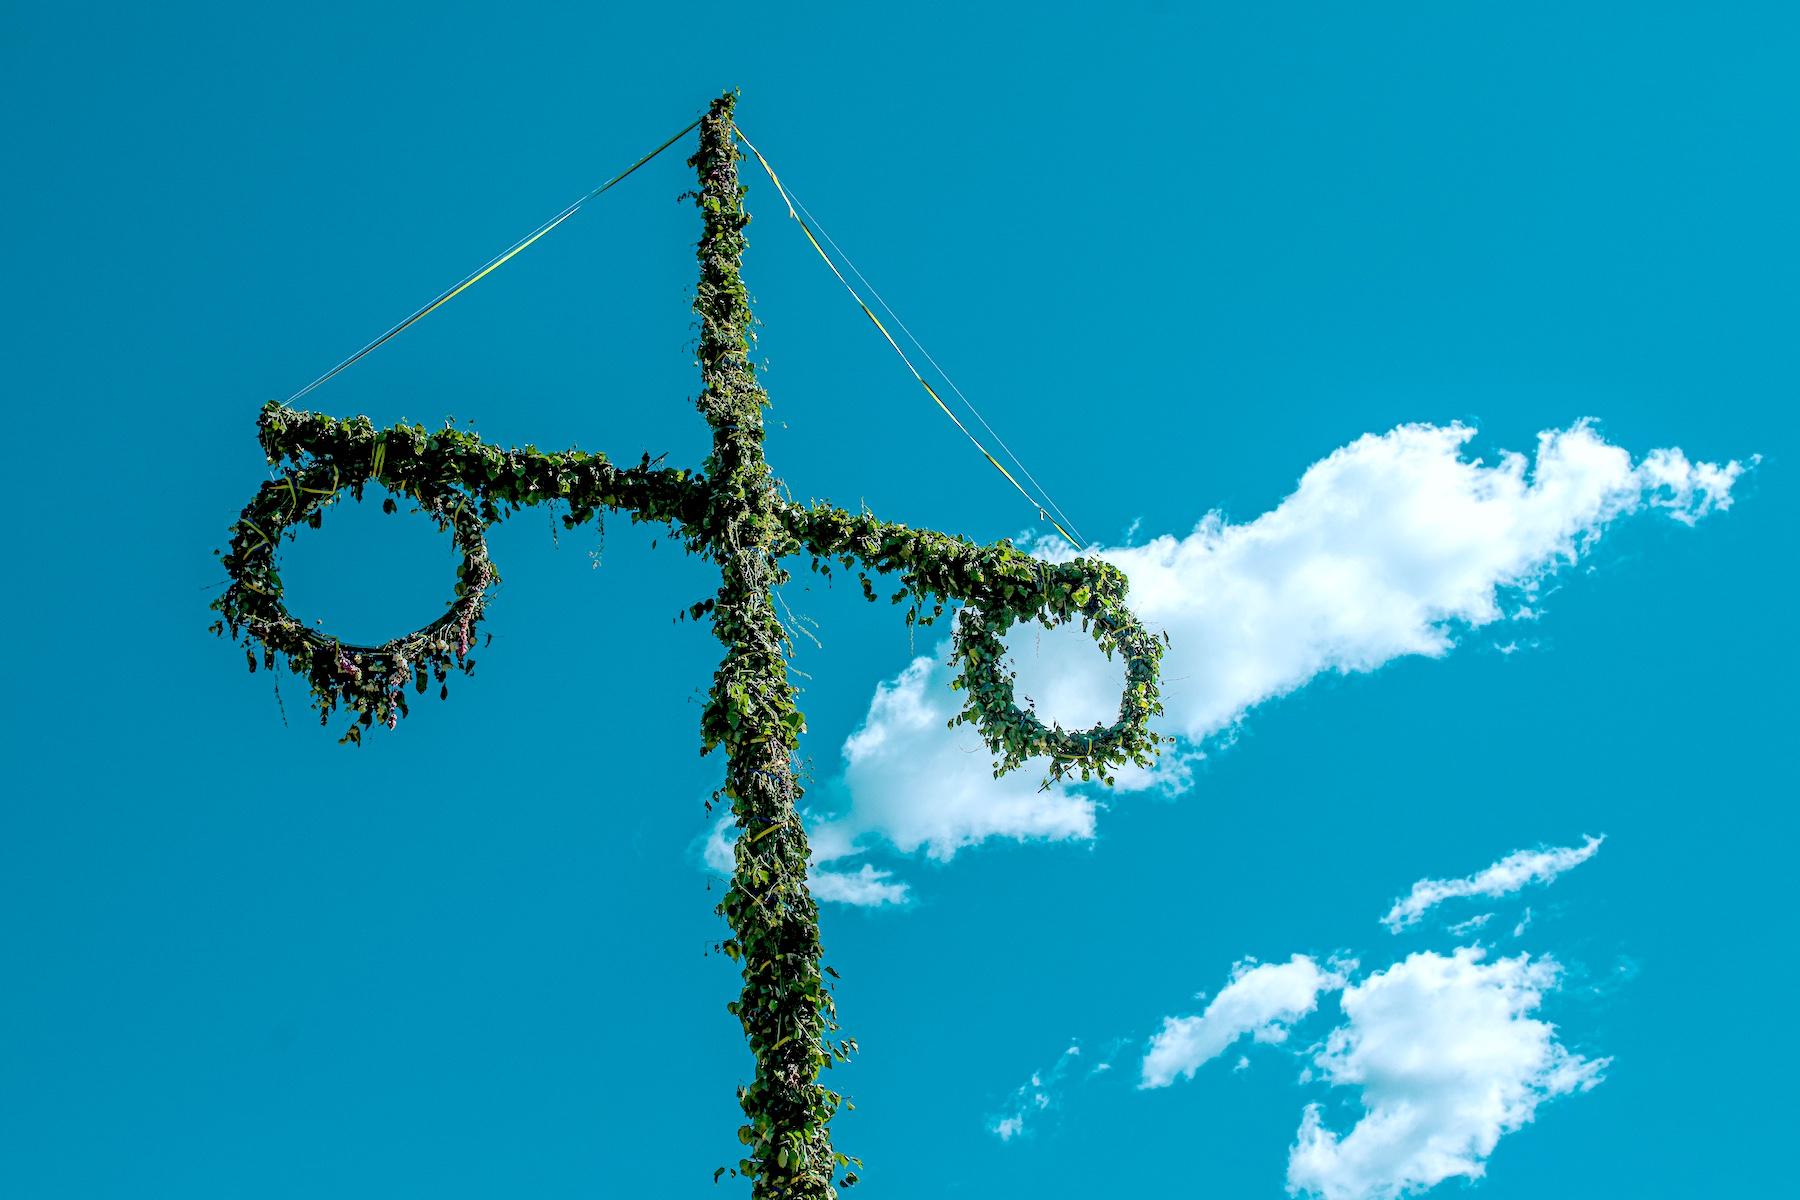 Maypole in Sweden with blue sky in background